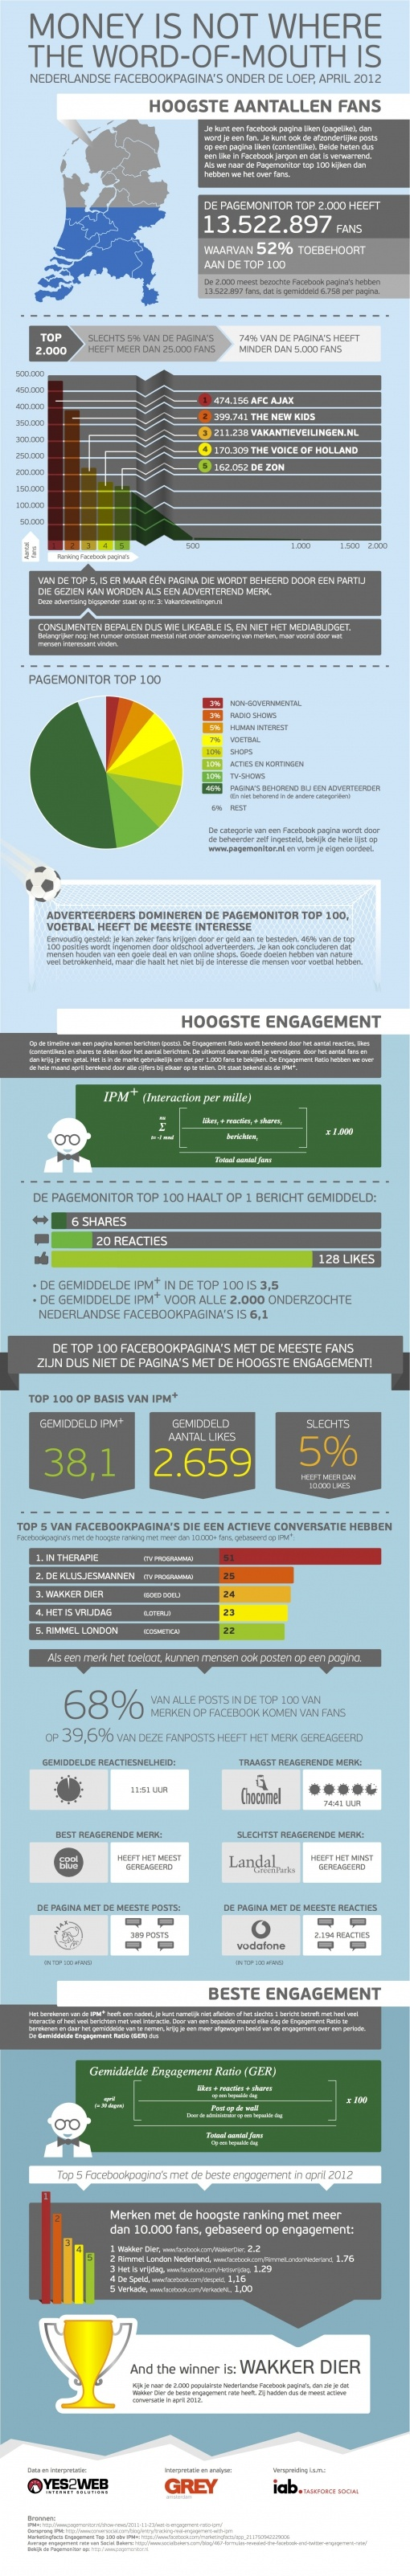 Analyse van Nederlands succesvolste Facebook pagina's.: Digital Marketing, Media Facebook, Infographic Money, Social Media, Media Infographic, Facebook Pagina, Facebook Infographic, Facebook Marketing, Vans Netherlands